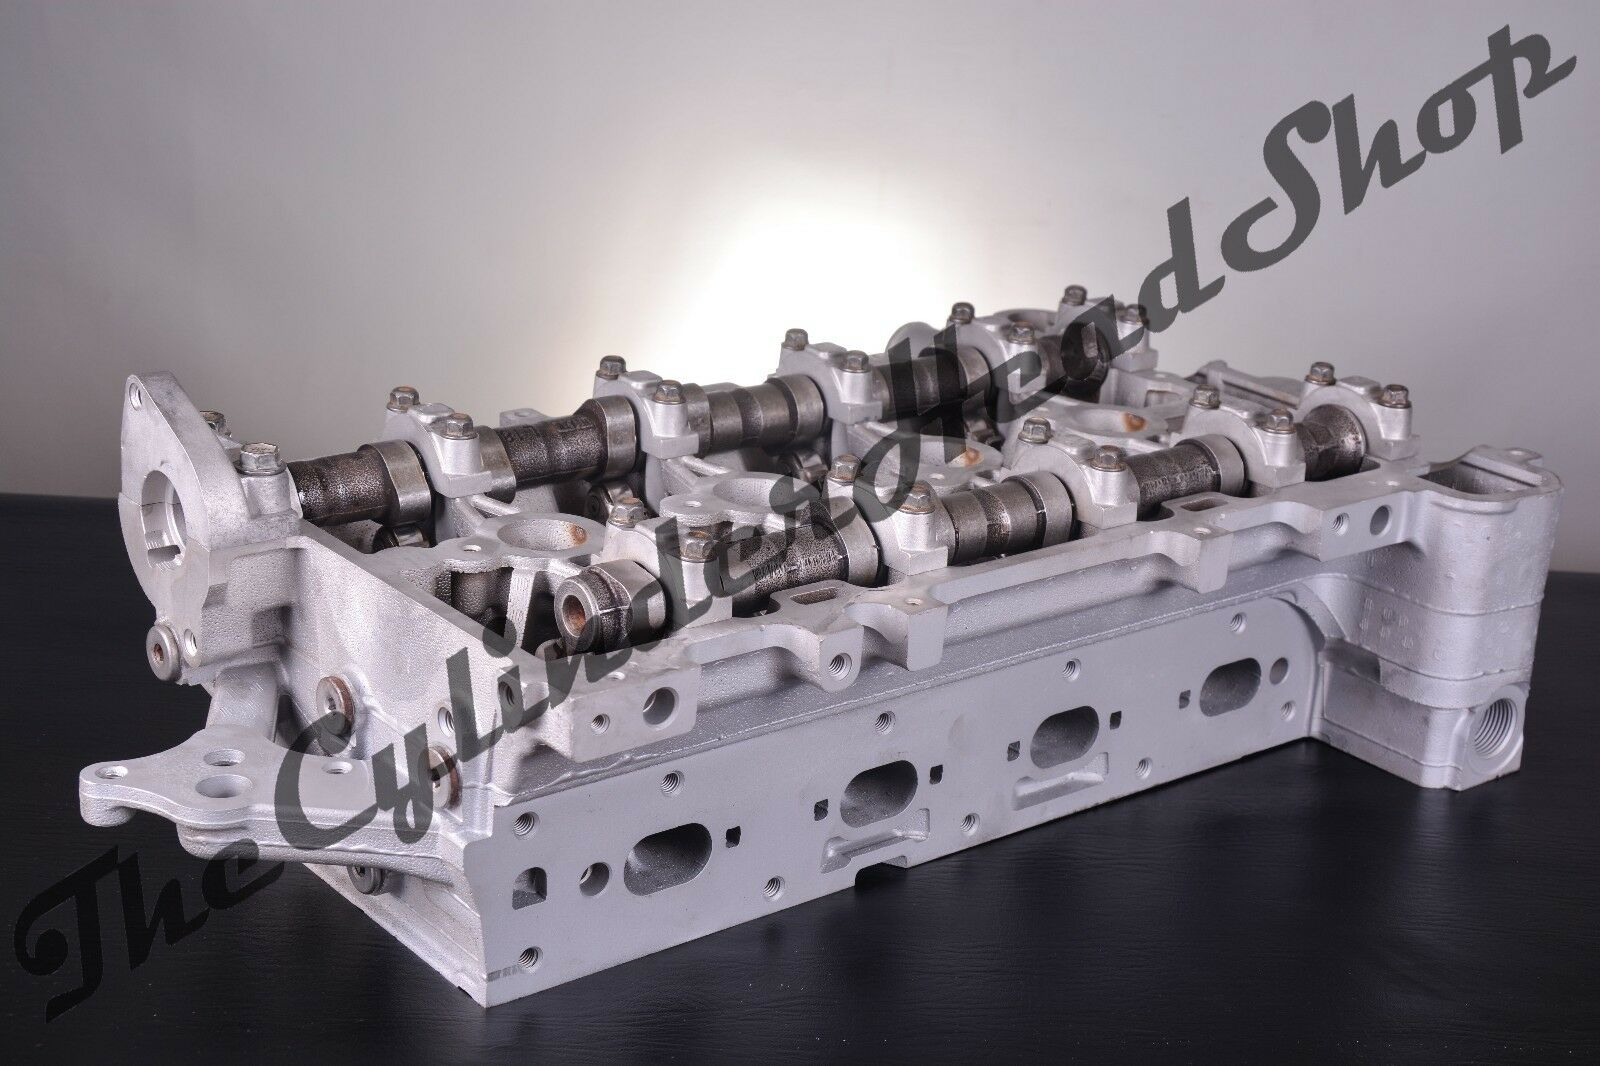 Used Chevrolet Cobalt Cylinder Heads And Parts For Sale 2003 Saturn Ion Head Gasket 22 Chevy Gm Ecotec Dohc Cavalier W Gaskets Bolts